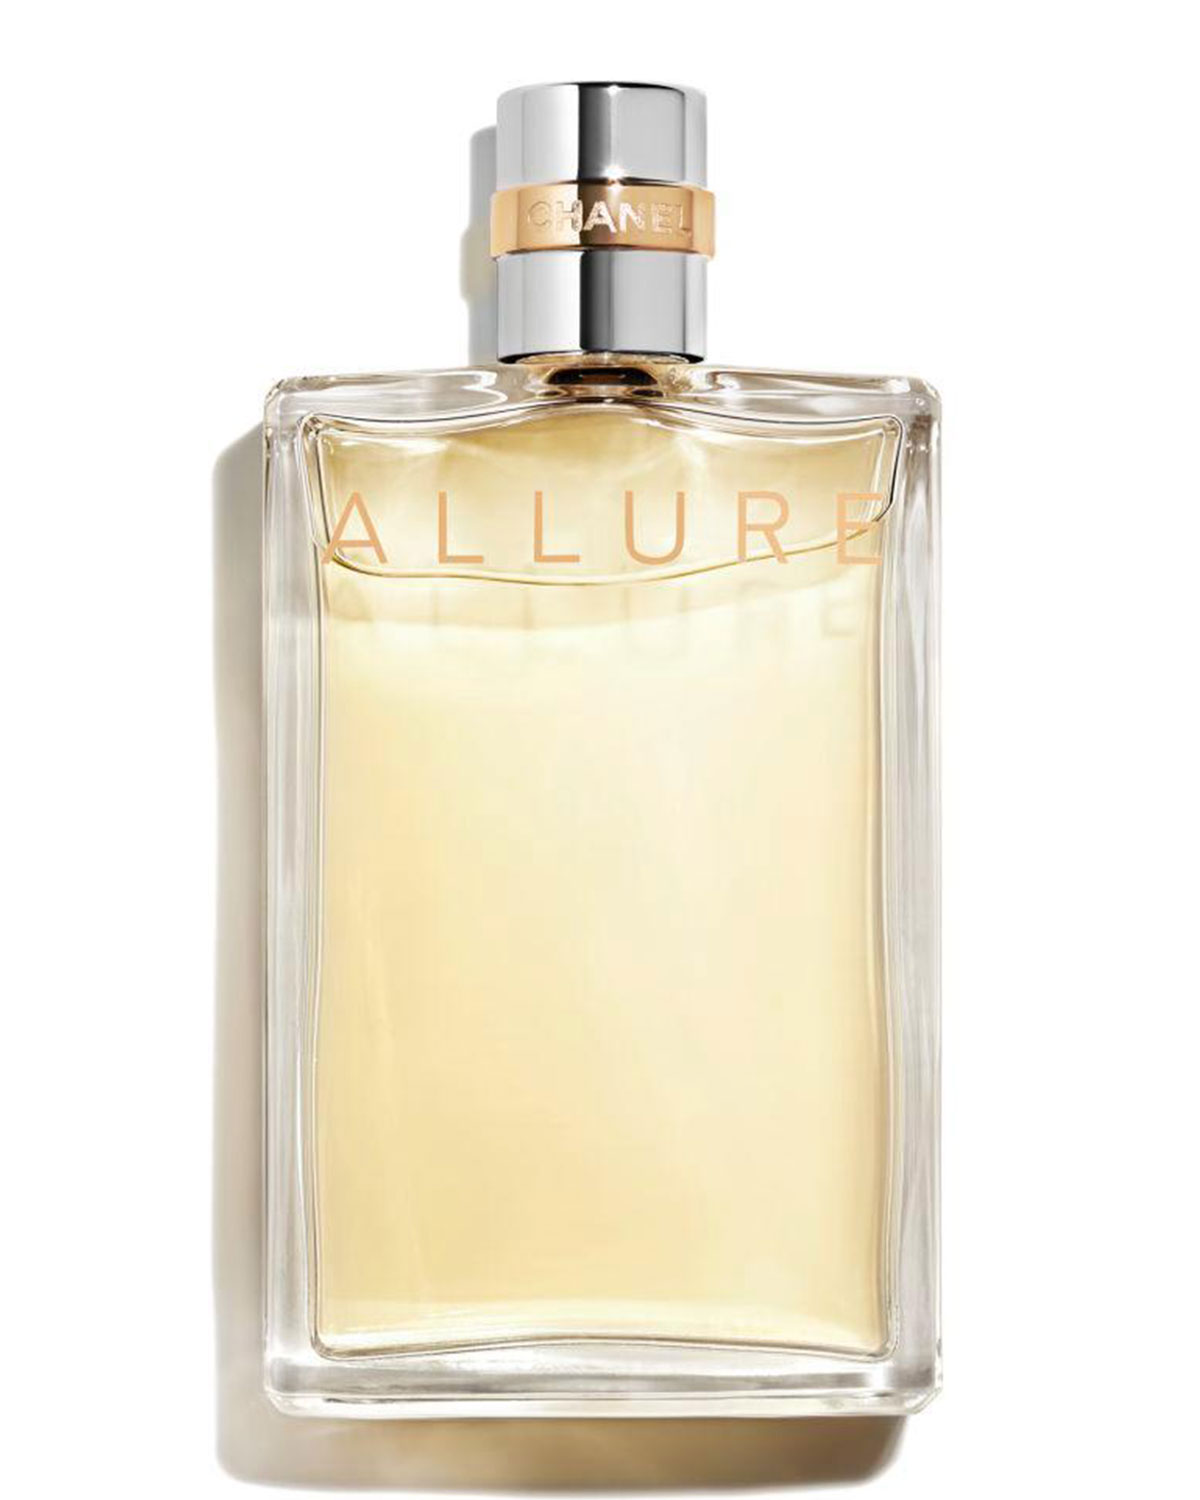 CHANEL <b>ALLURE</b><br> Eau de Toilette Spray, 3.4 oz.